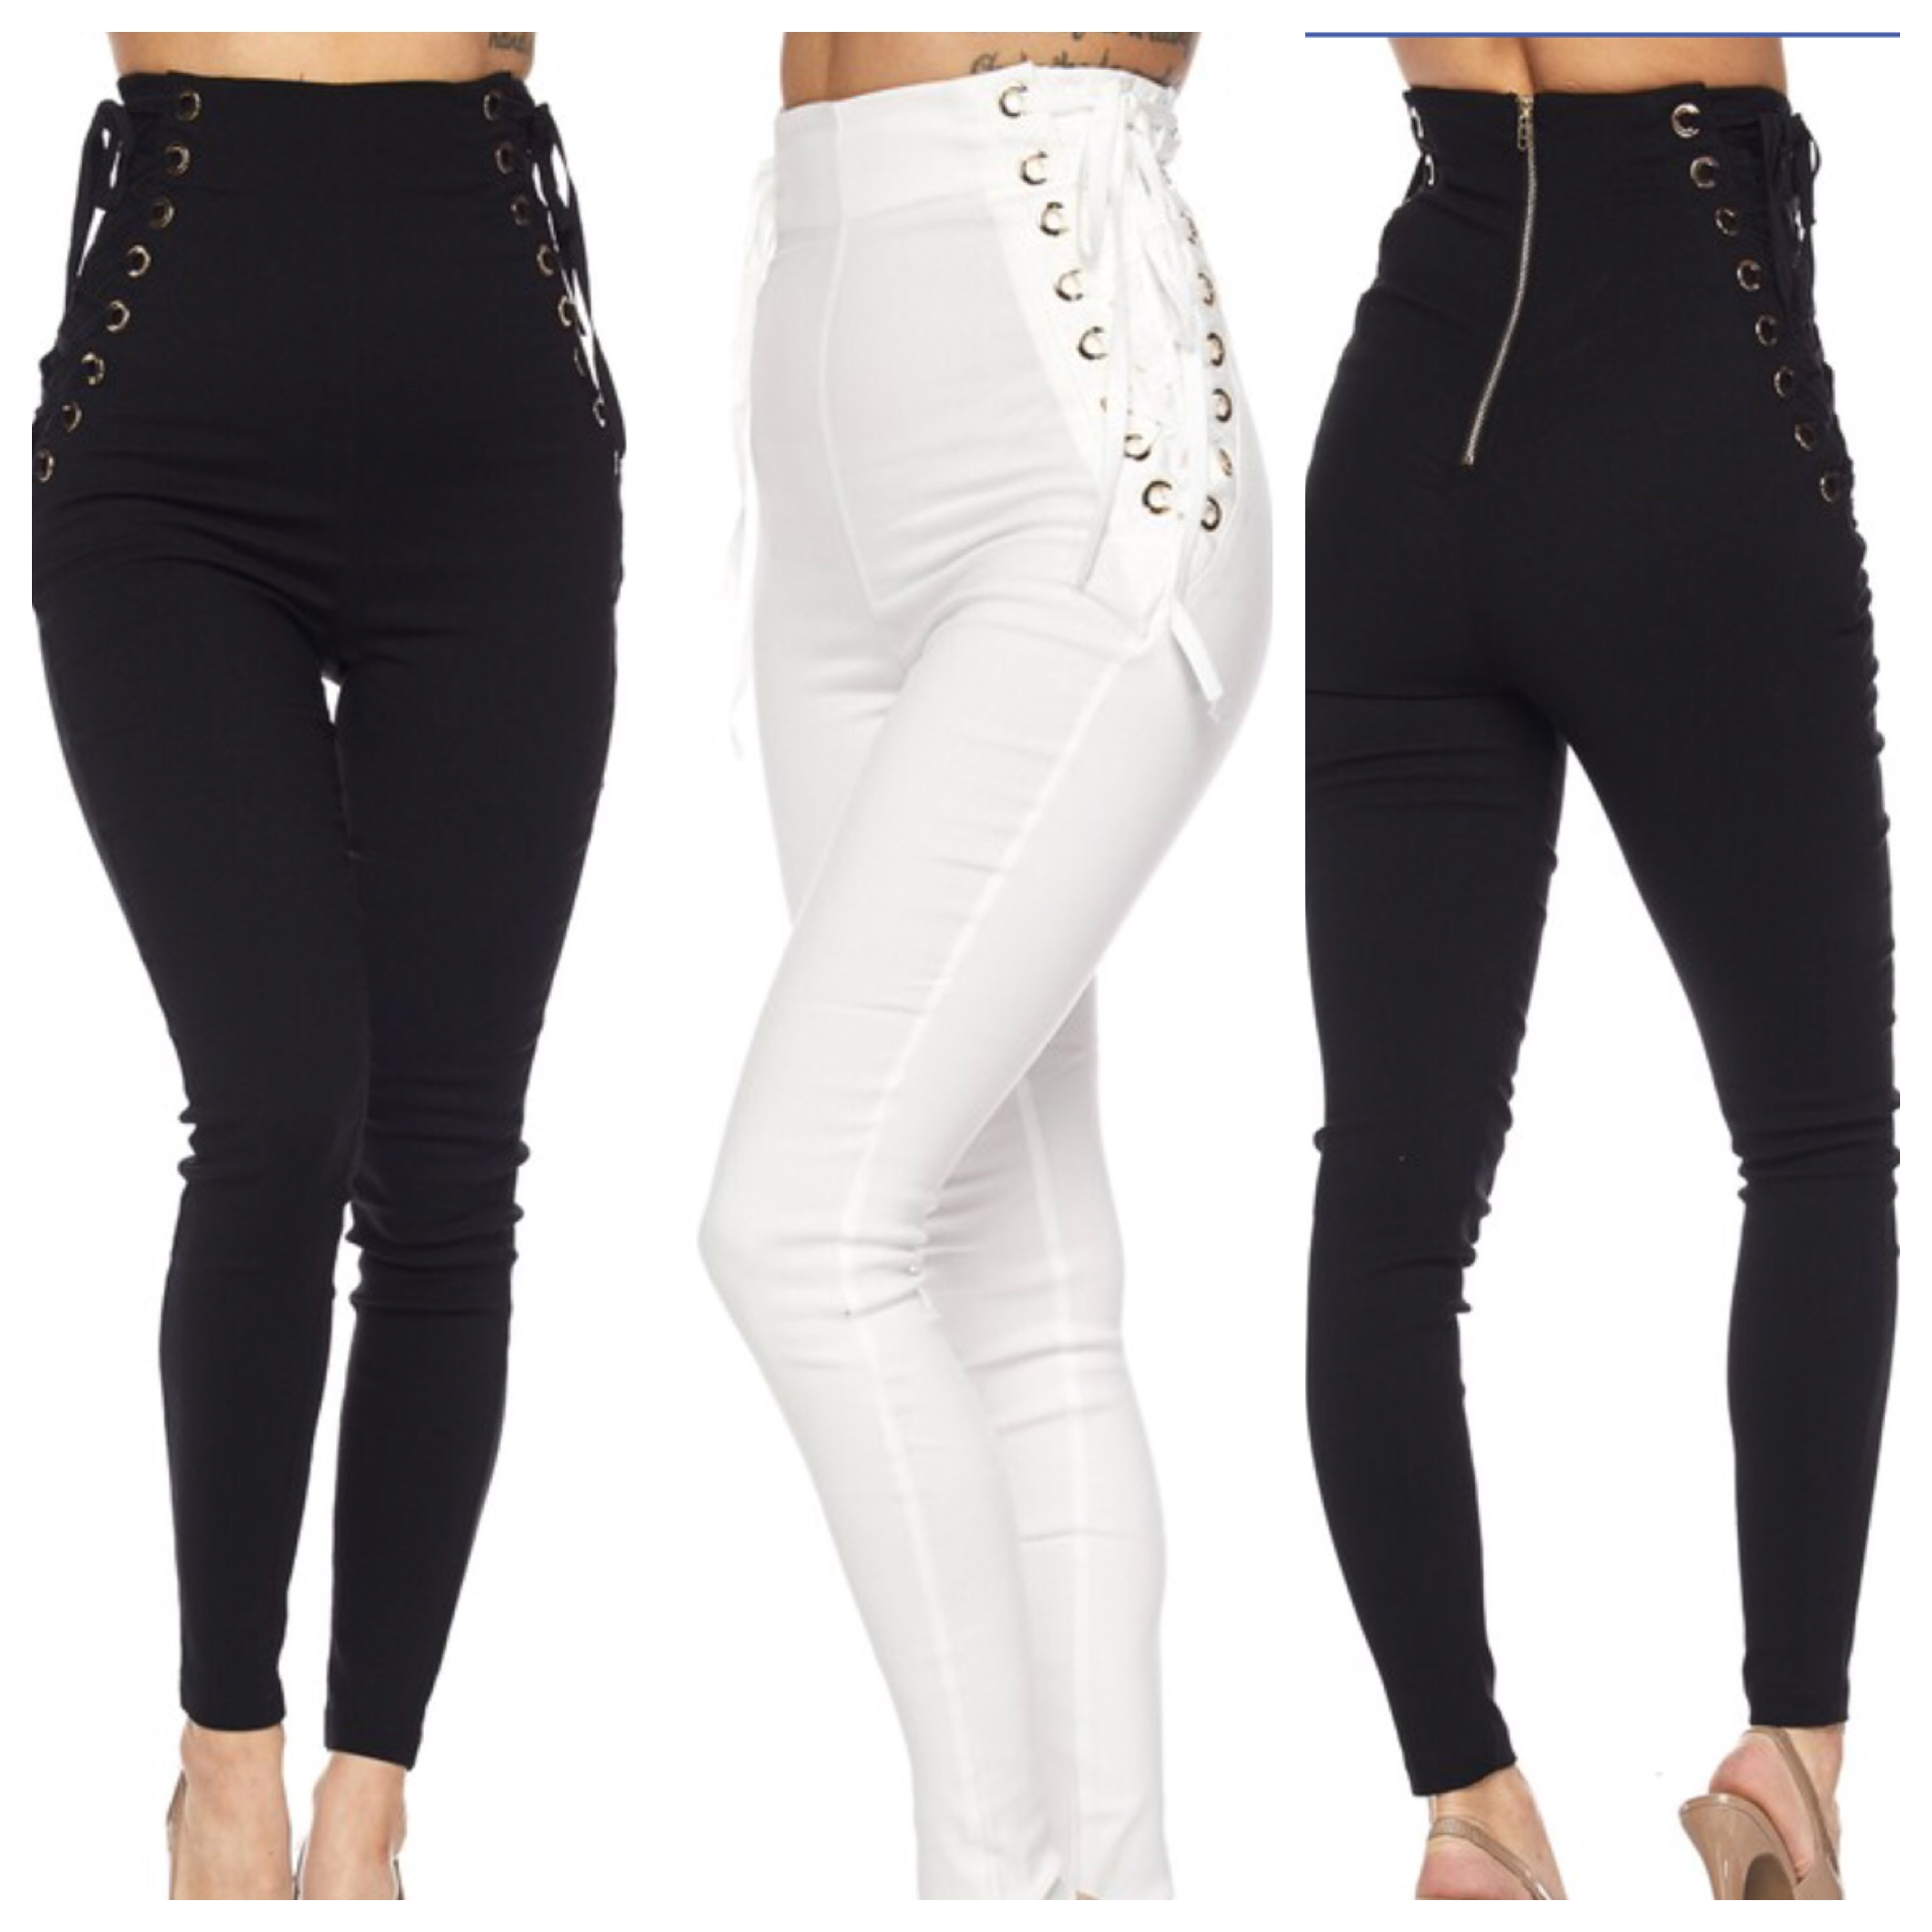 new york cheap prices look good shoes sale High-waisted Corset Pants from Chic Bella's Virtual Closet